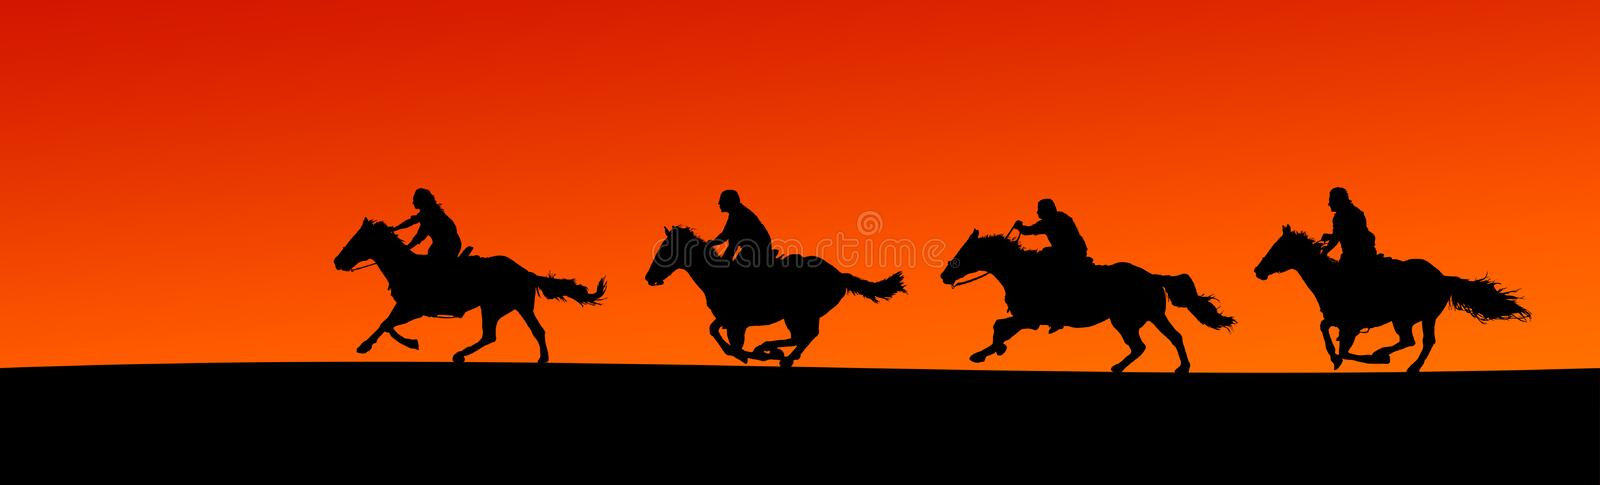 Horsemen Silhouette Panorama (clipping paths) stock illustration